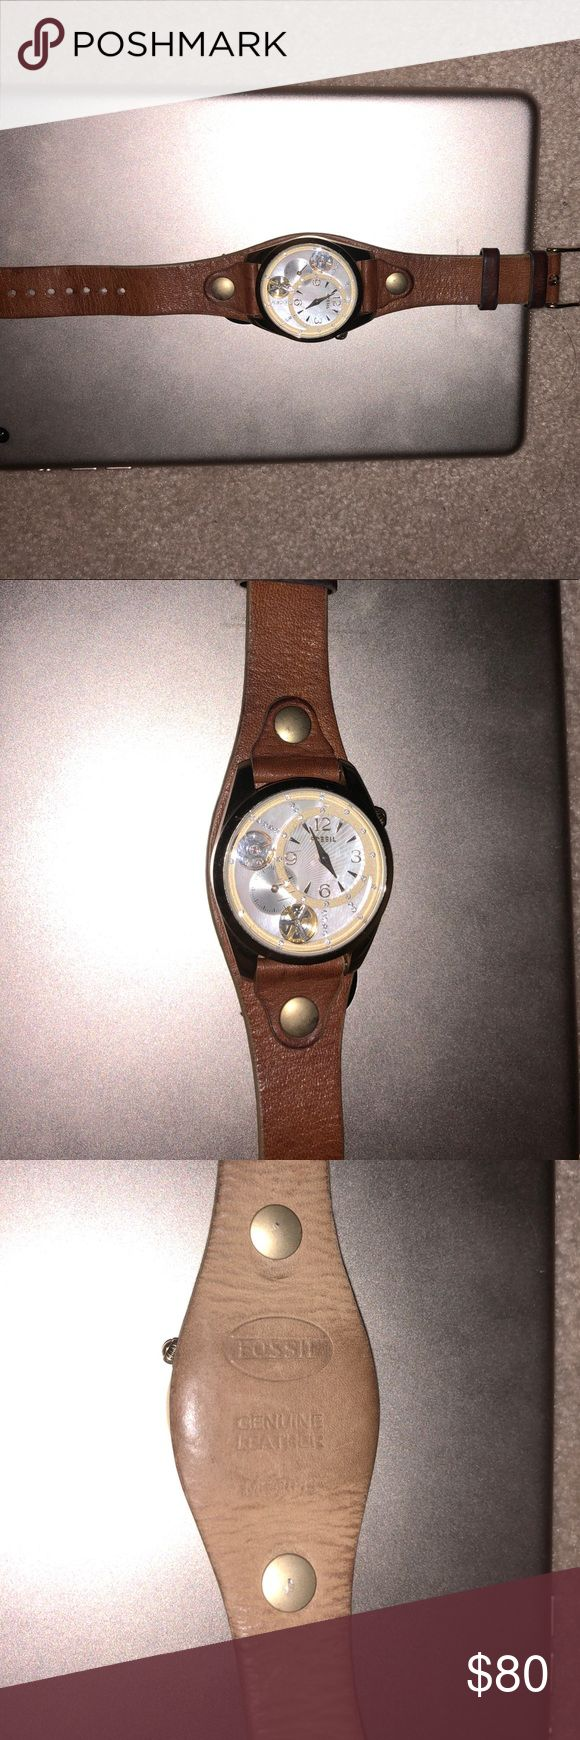 Fossil Automatic Quartz watch with pearl face Authentic mechanical twist watch (runs on motion). Pearl face, quartz stones, gold tone and tan leather. Some discoloration but otherwise looks great. Fossil Accessories Watches